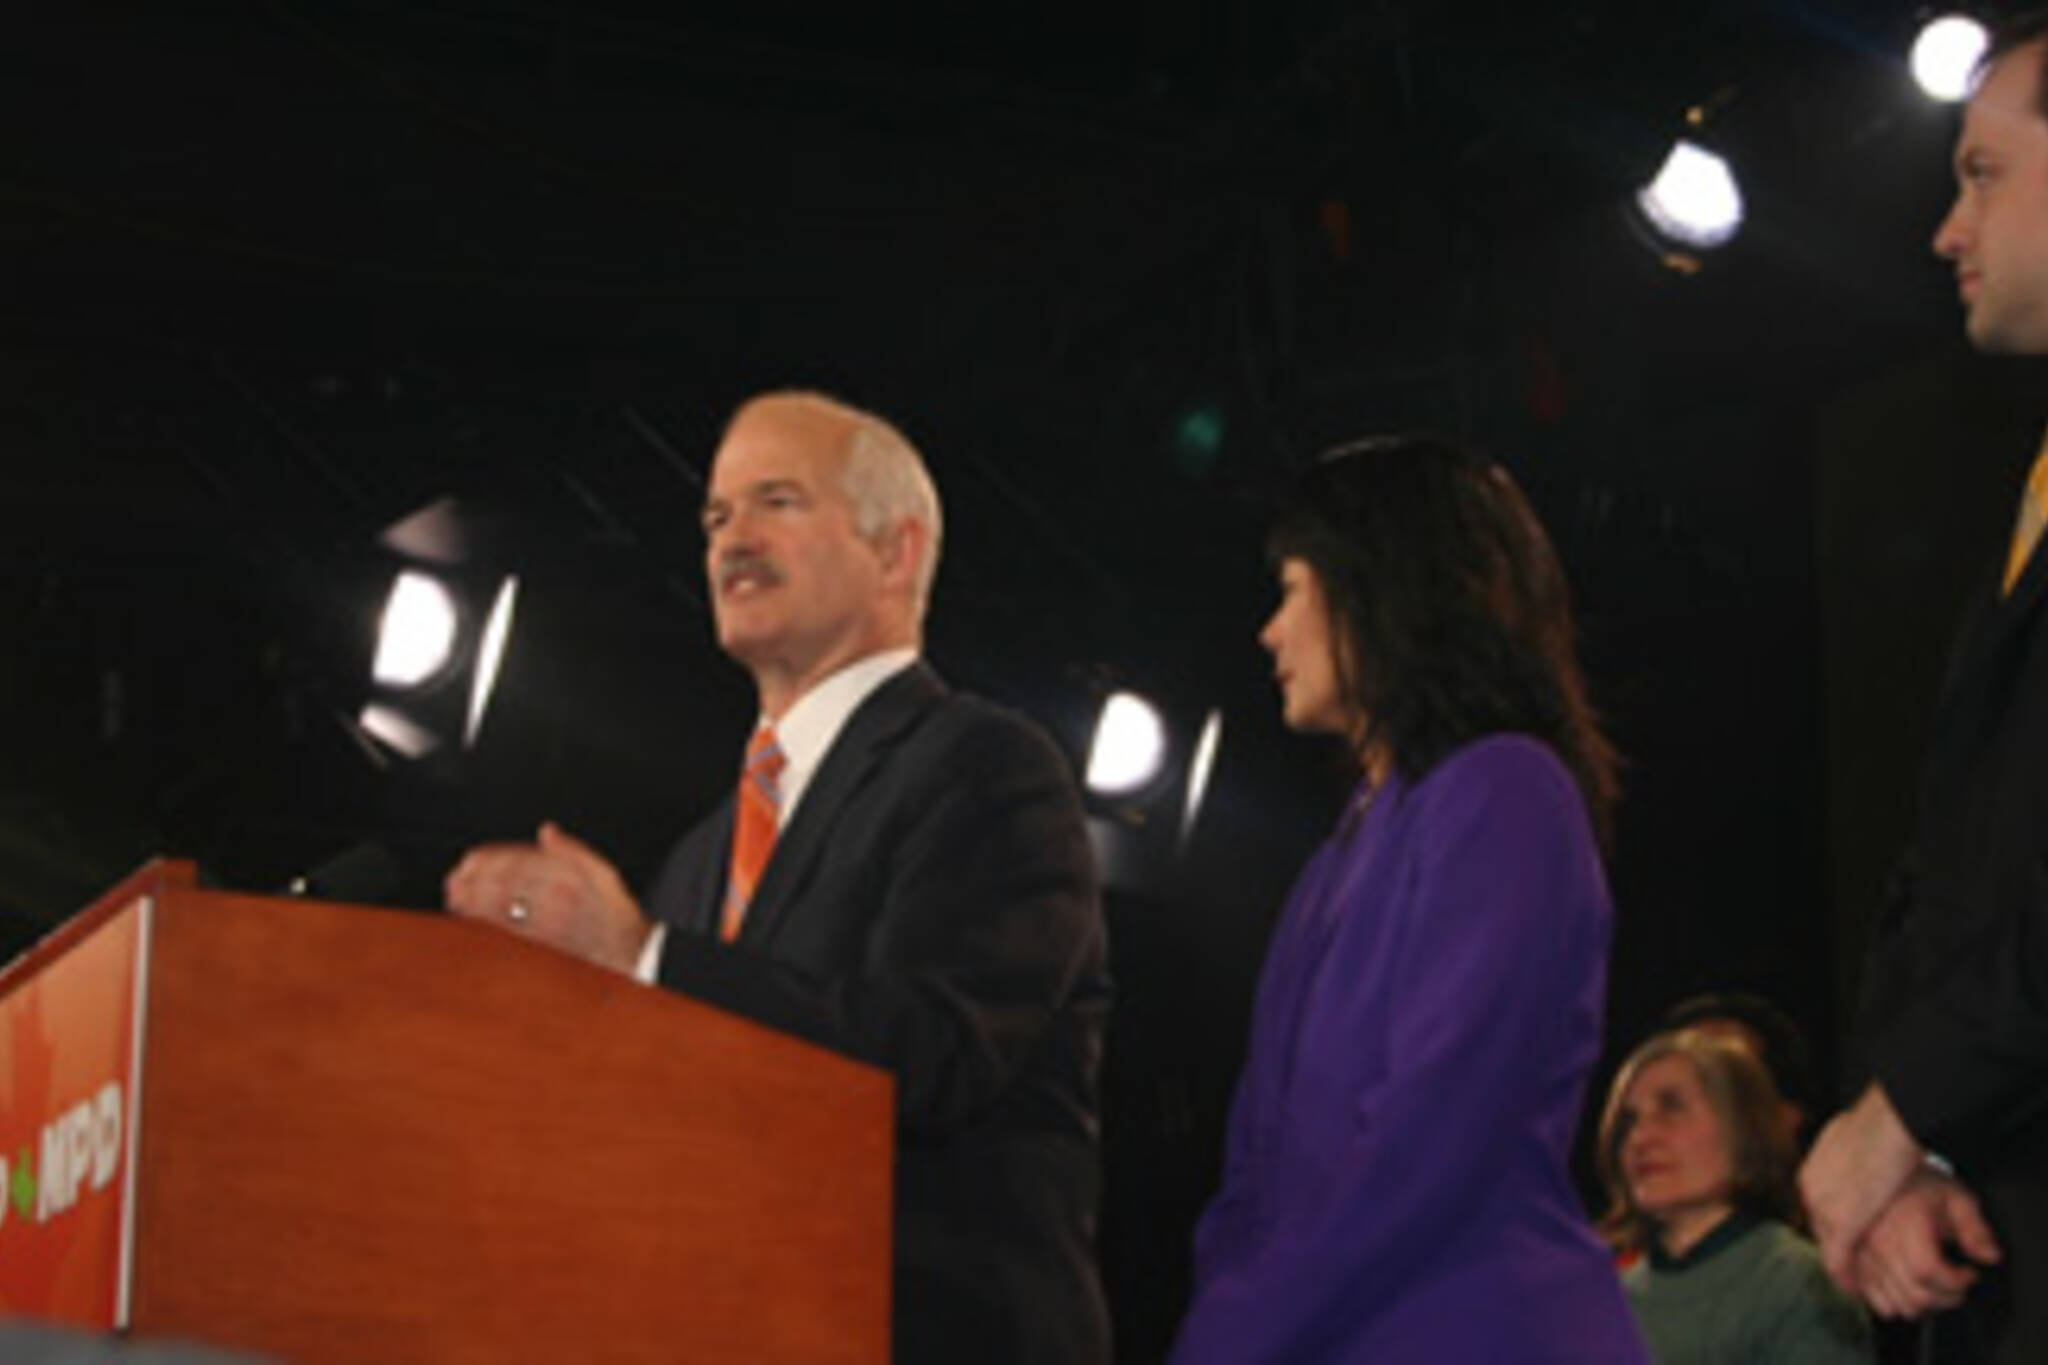 Jack Layton, with wife Olivia Chow and son, tell the crowd what they want to hear